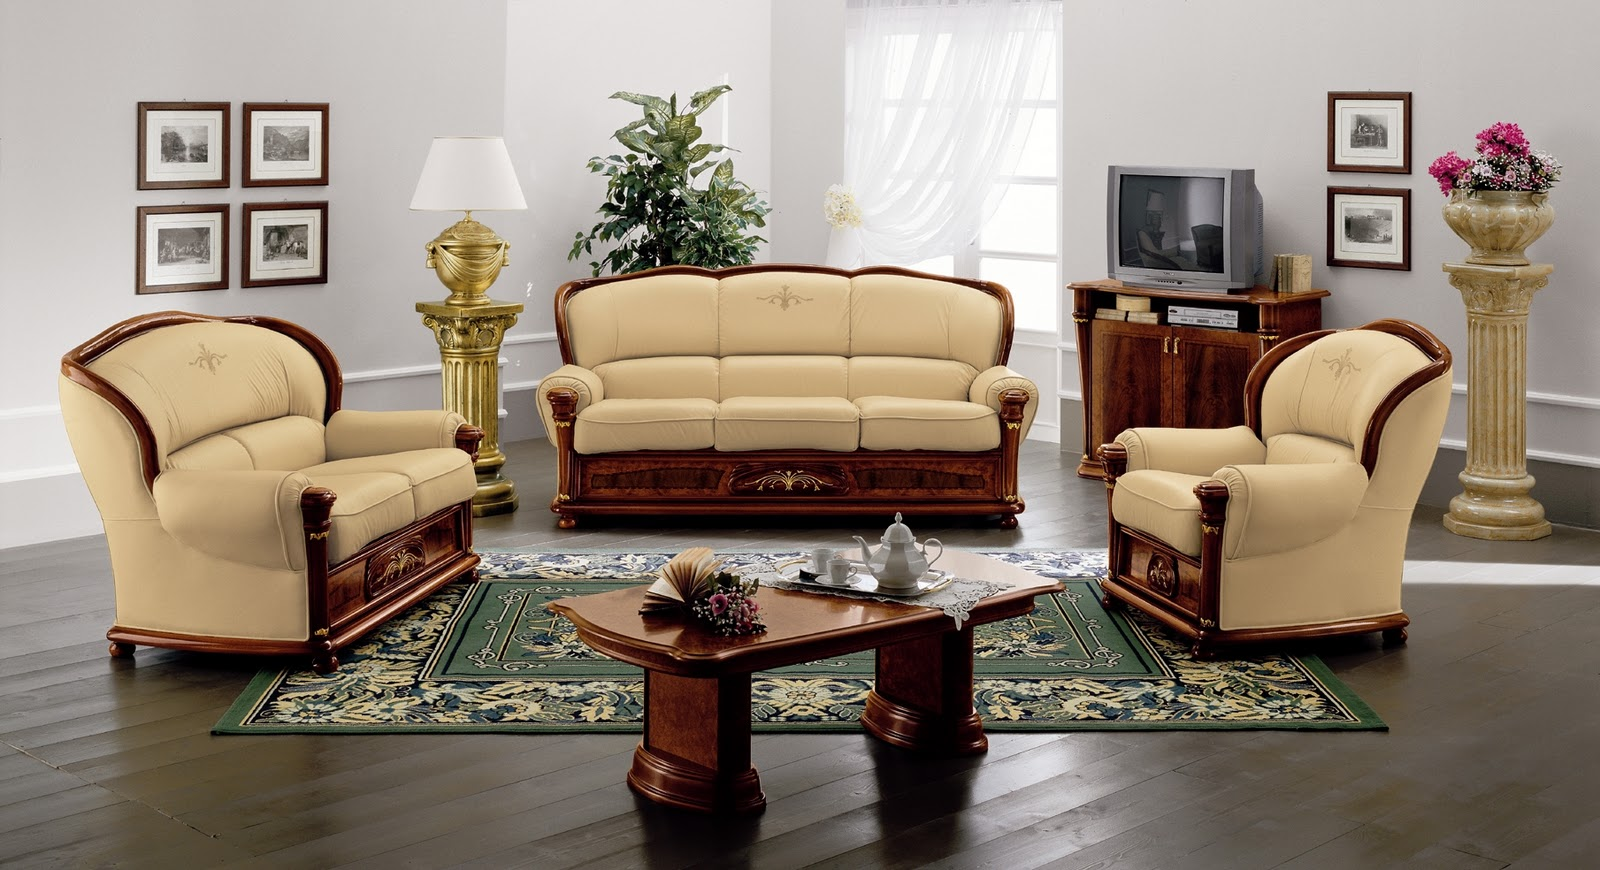 Living room sofa design photos living room interior designs for Sofa set designs for living room